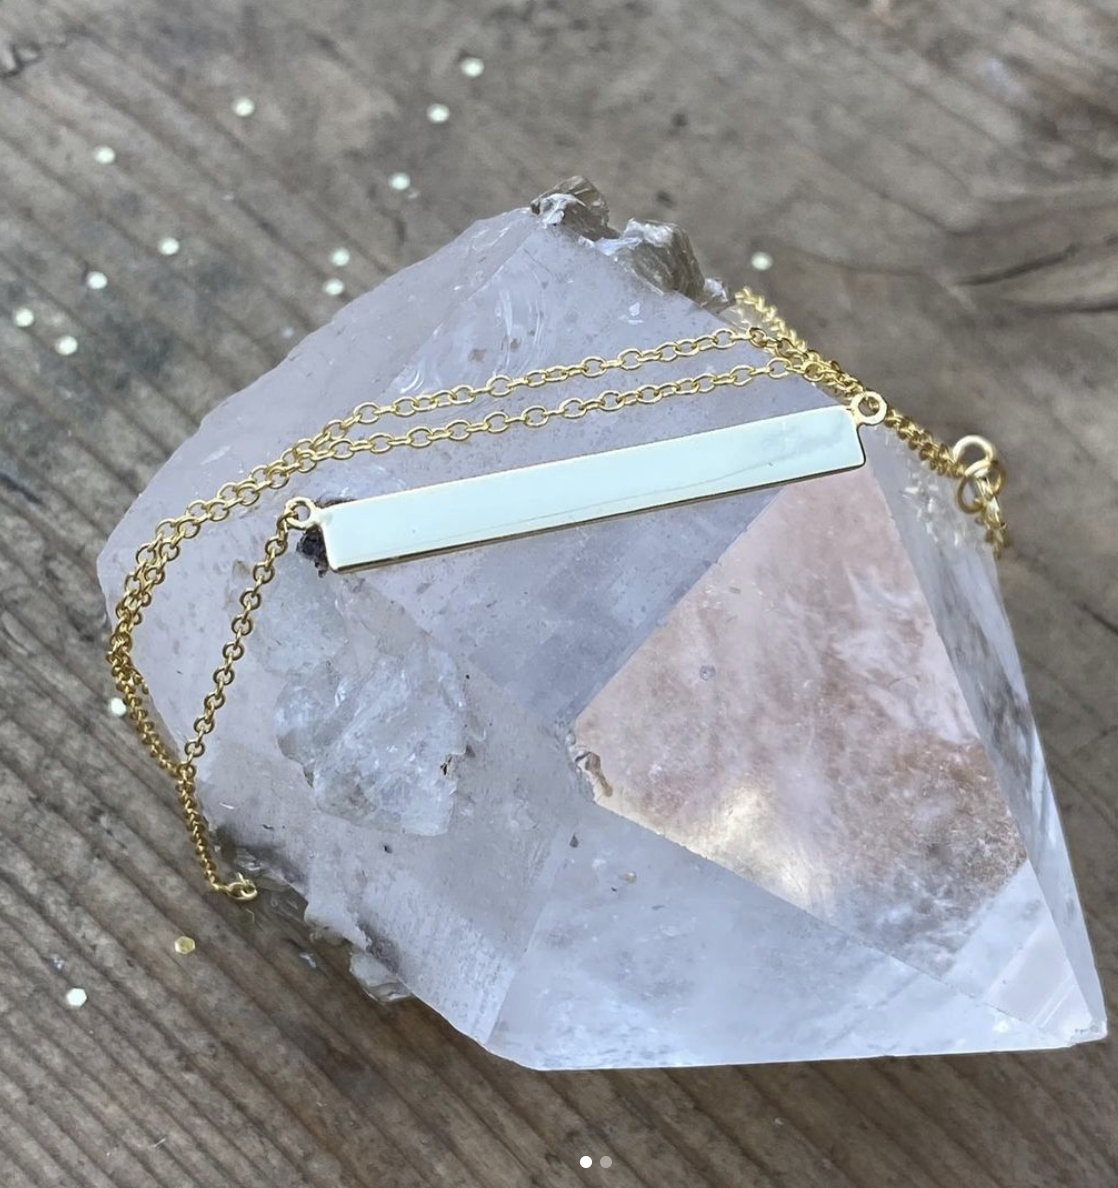 A plate necklace on a quartz stone